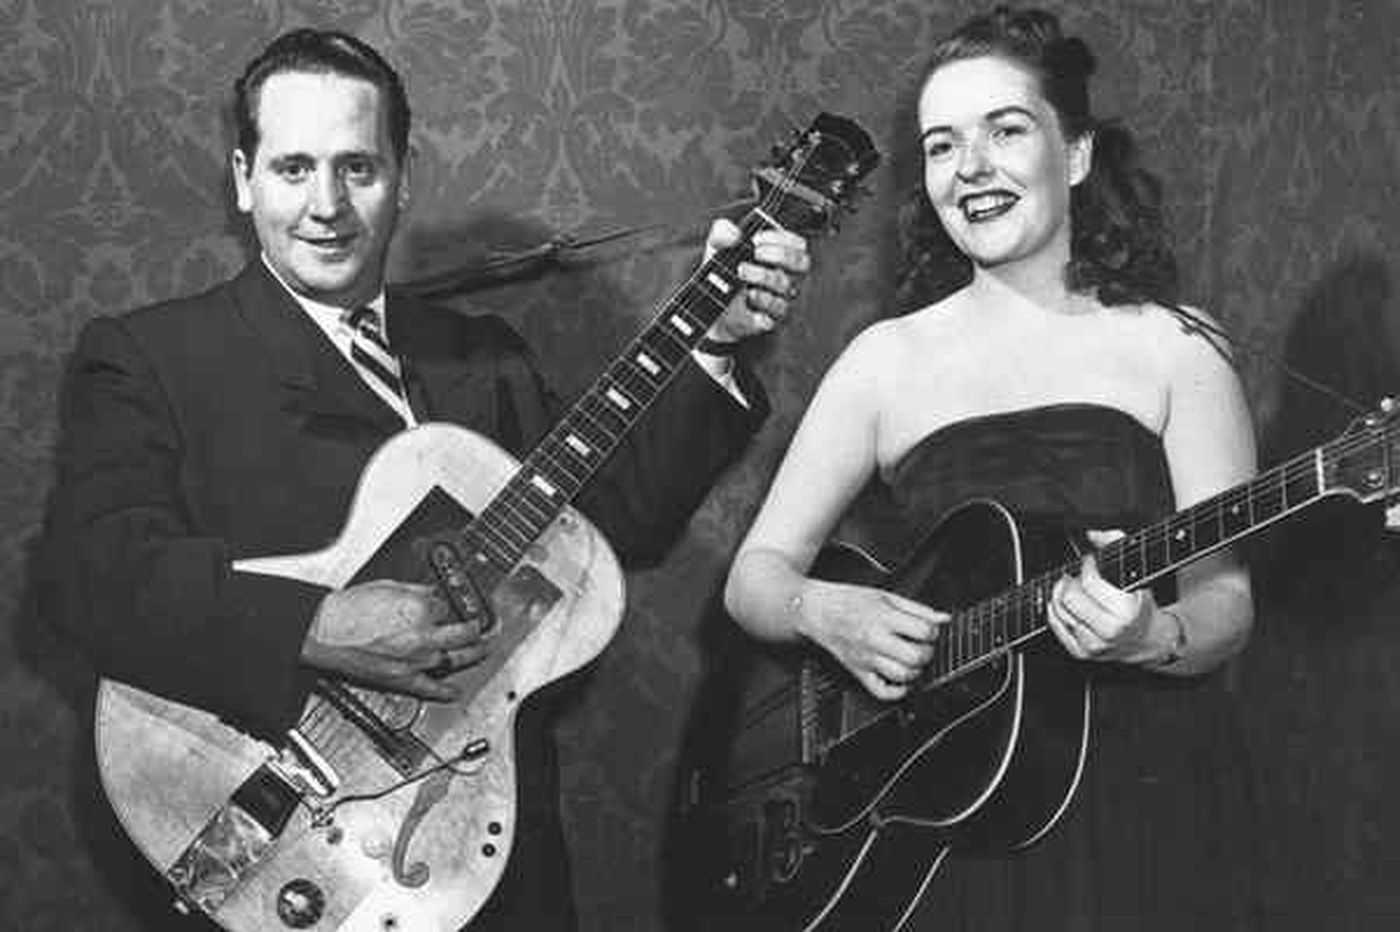 Guitar legend, 'architect of rock 'n' roll' Les Paul dies at 94